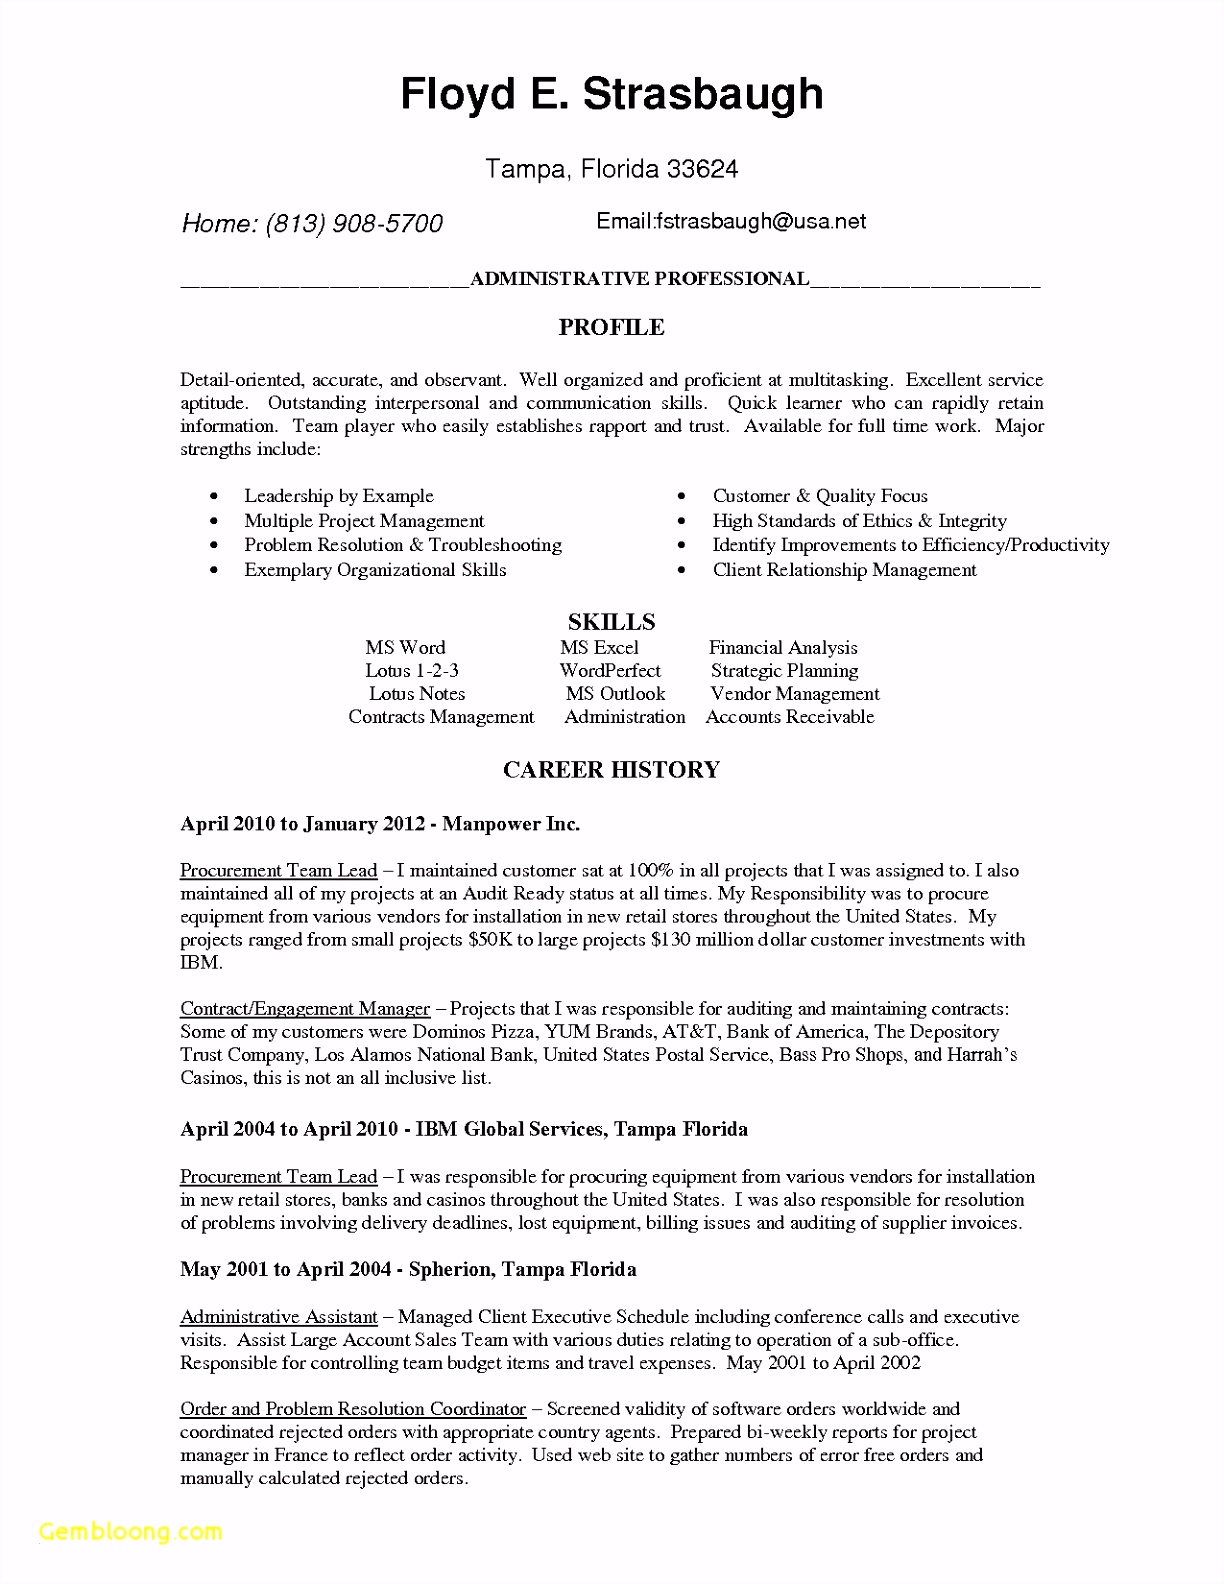 New Resume Templates Professional Resume format In Word Luxury Cv